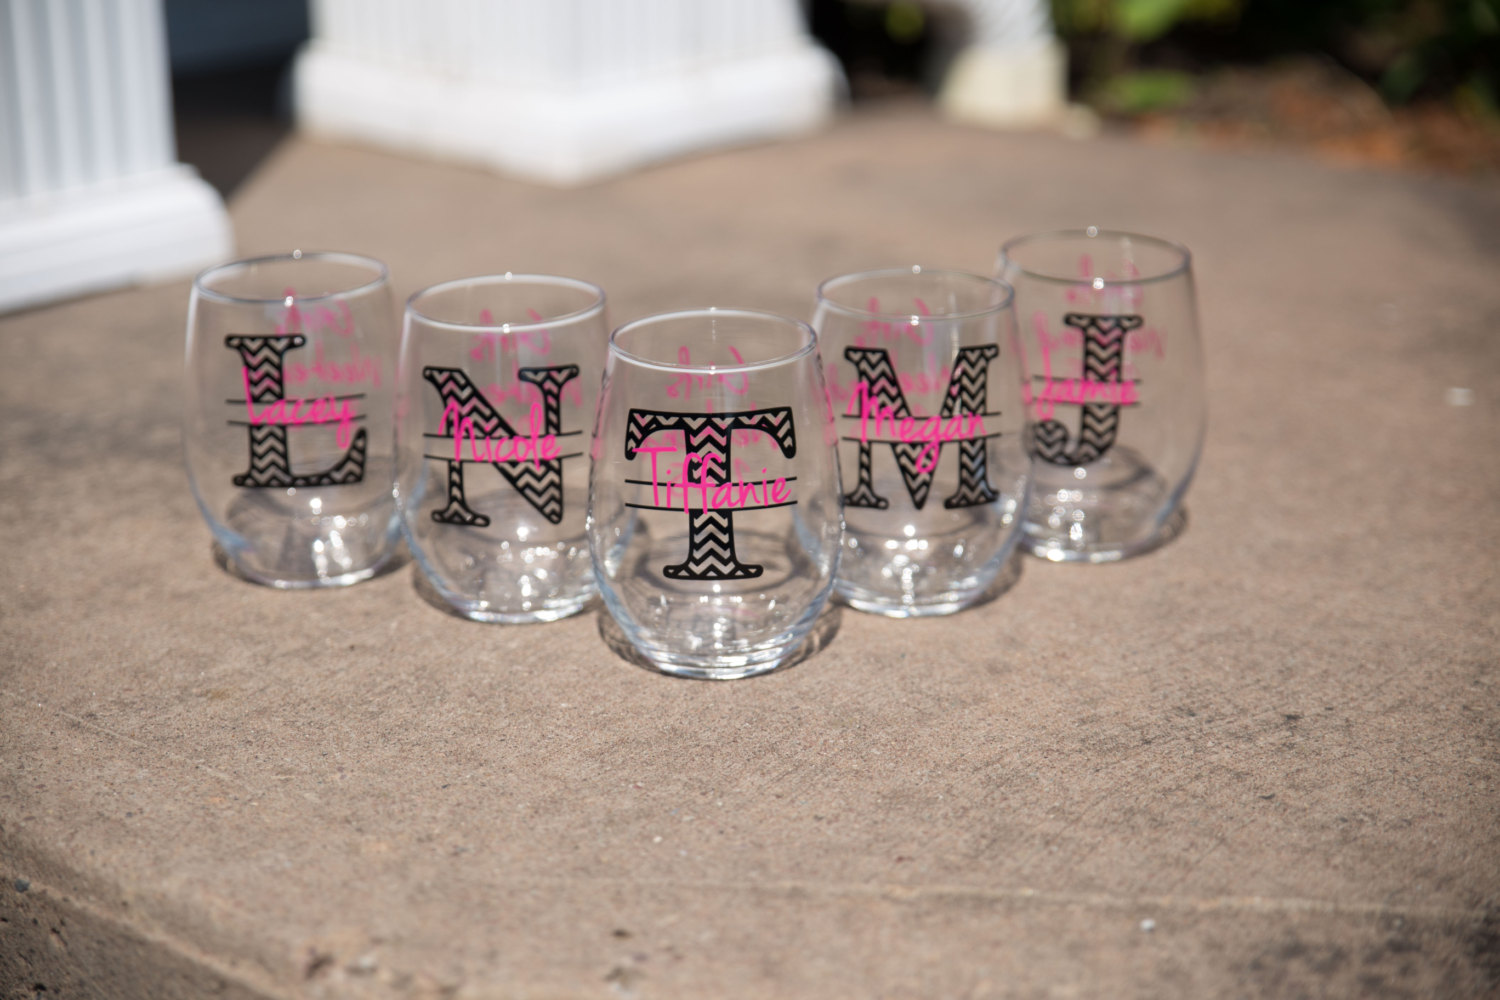 bridesmaid glasses by waterfall designs | fun bachelorette party ideas | http://emmalinebride.com/planning/fun-bachelorette-party-ideas/